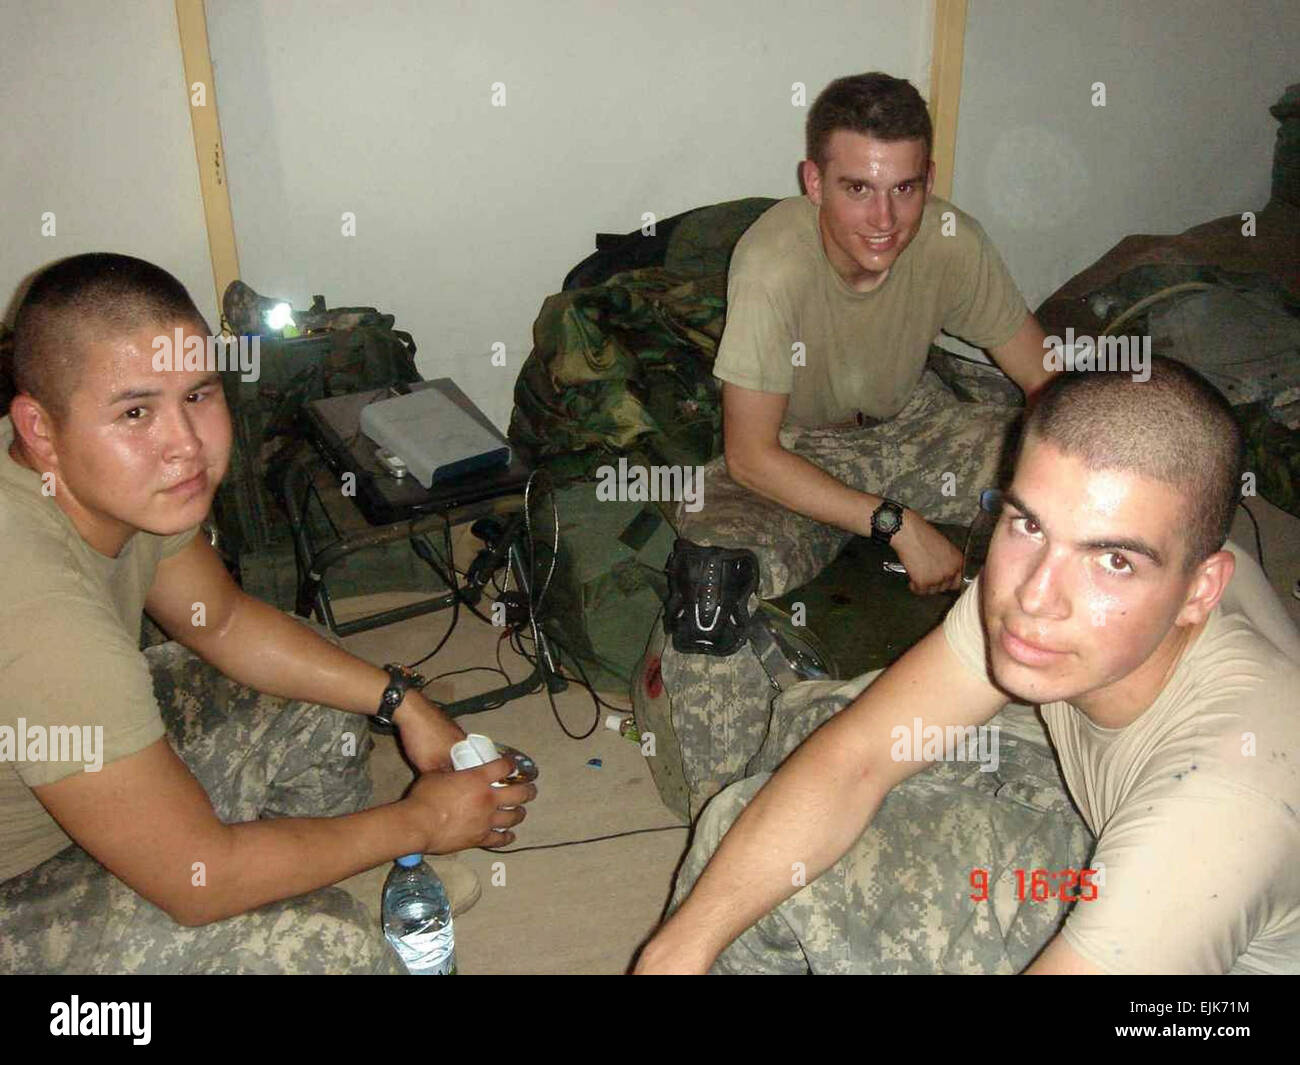 Spc. McGinnis then Pfc. with buddies Pfcs. Raymond Thomas and Edmond Leaveck, following a day of vigorous training - Stock Image